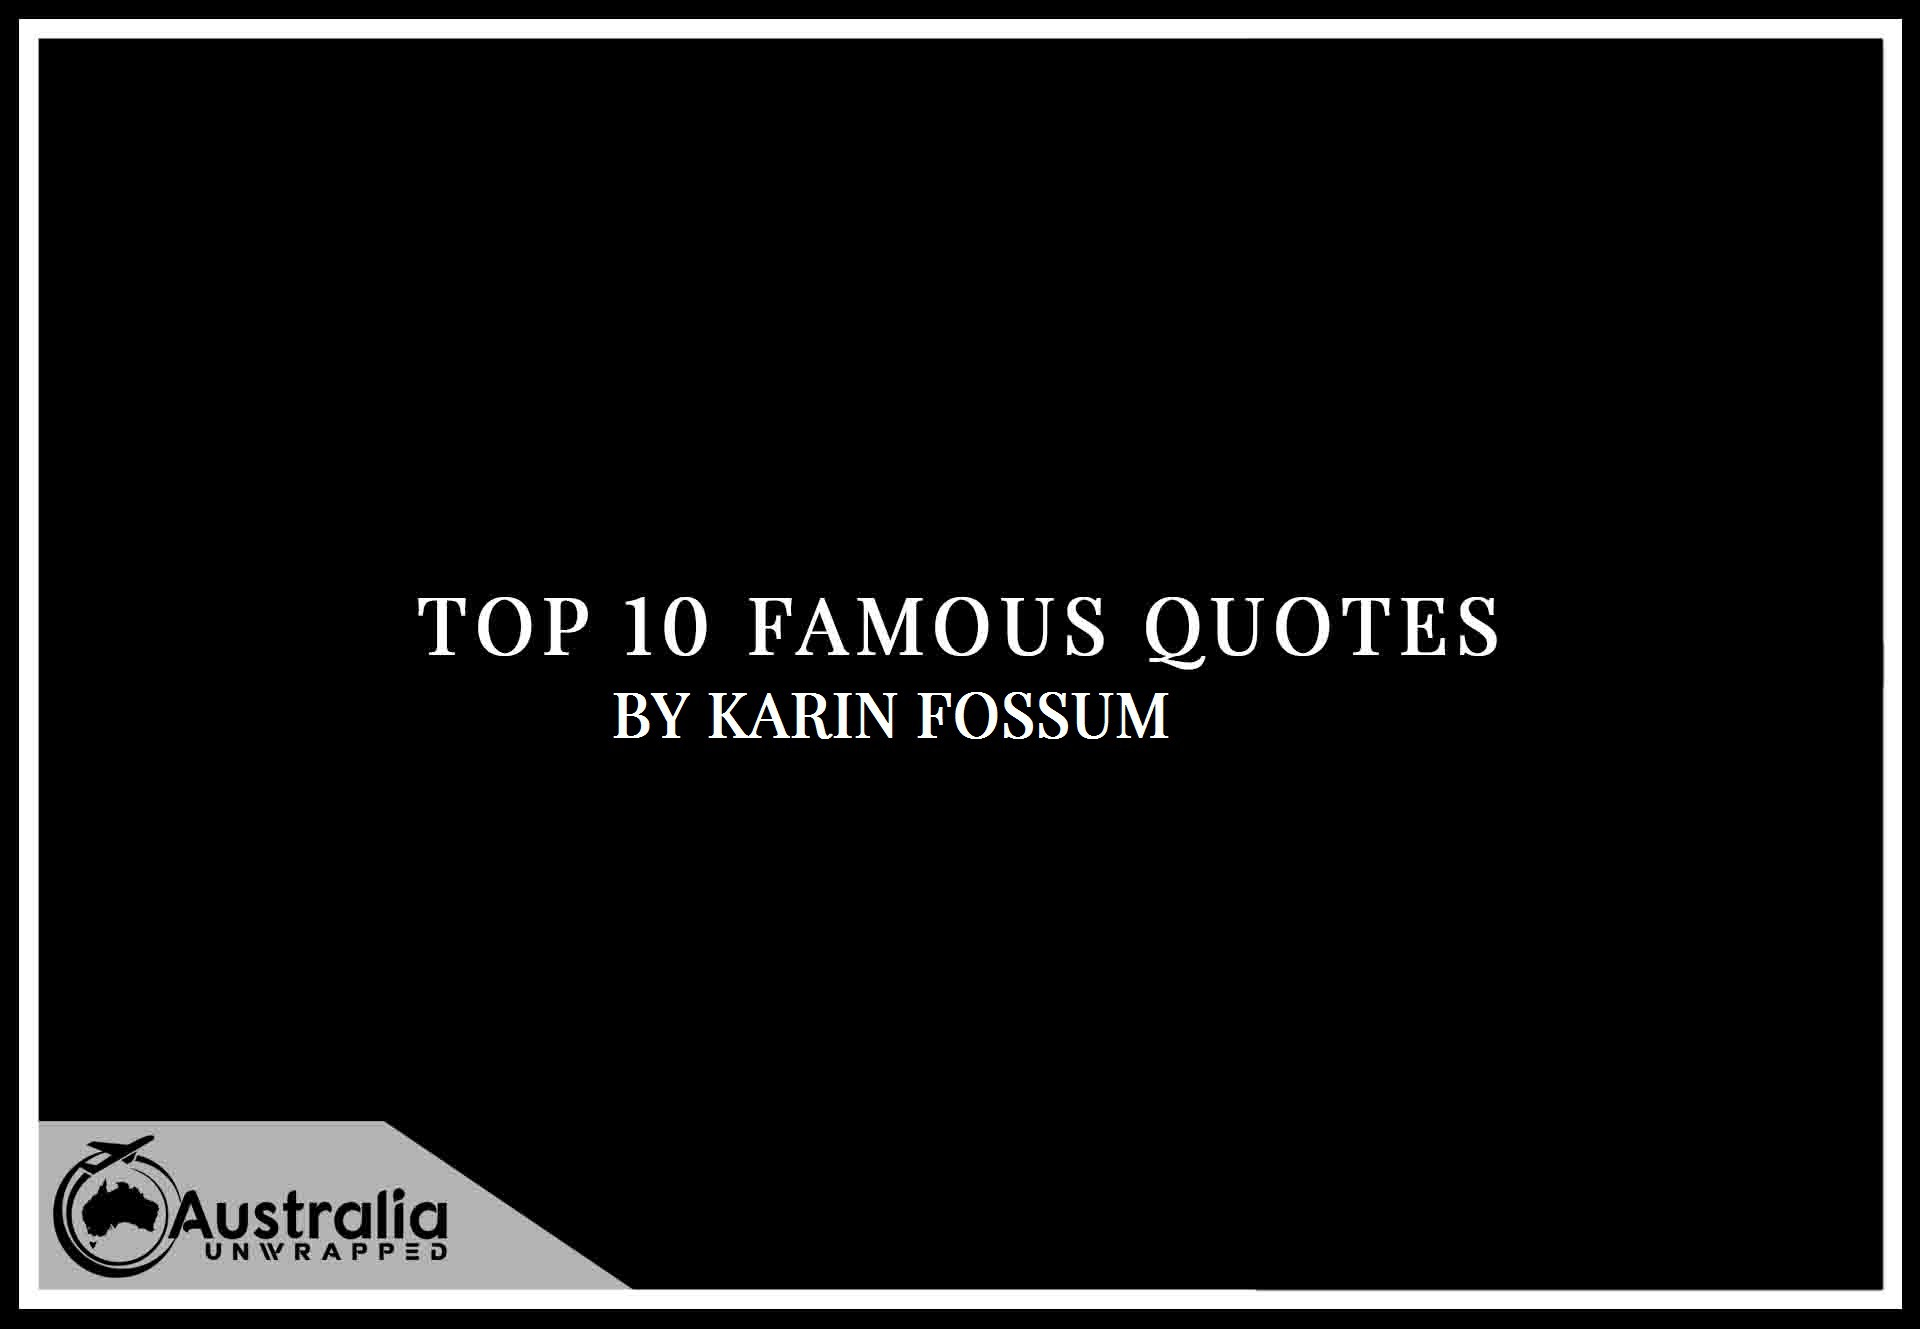 Karin Fossum's Top 10 Popular and Famous Quotes